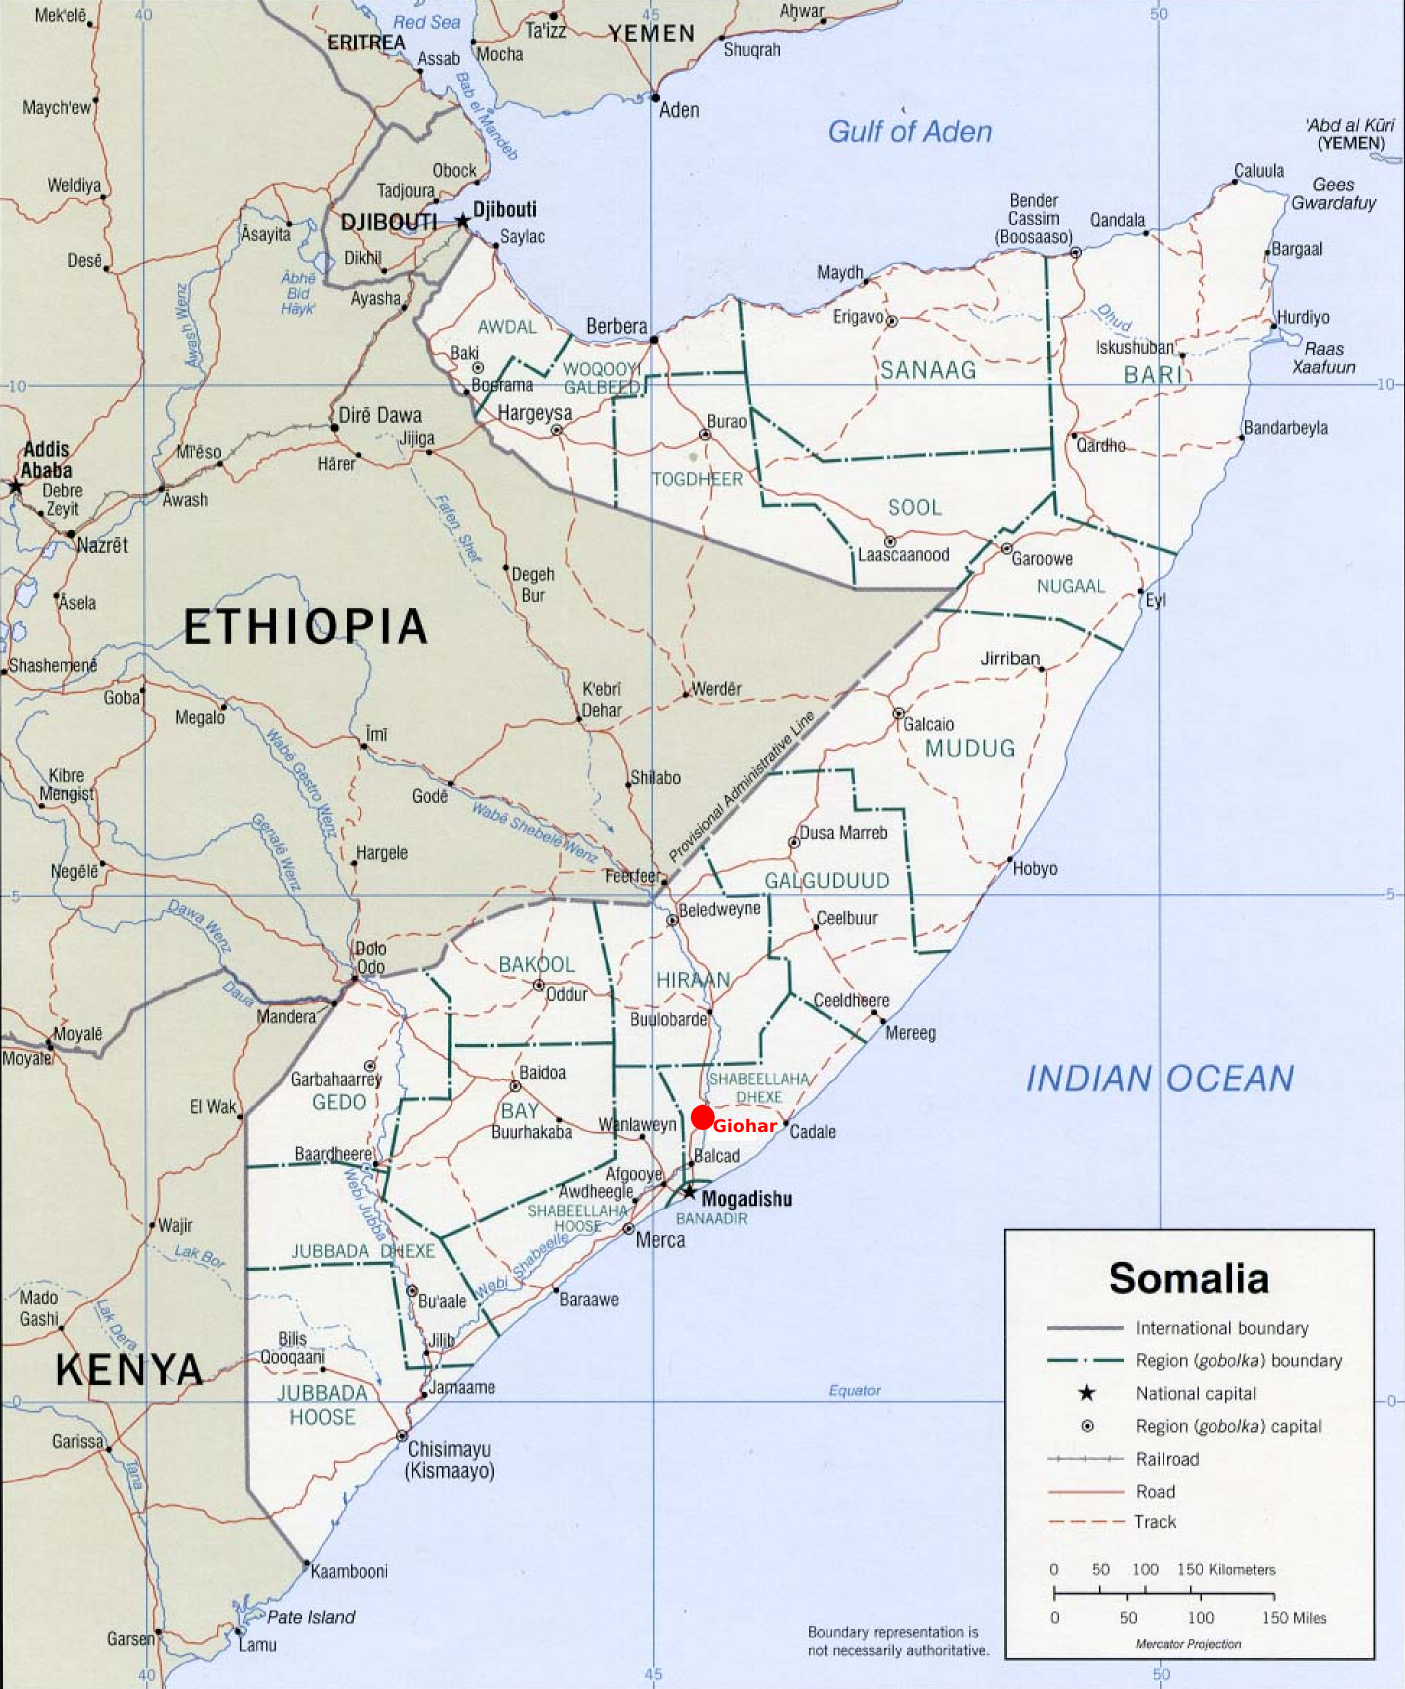 FilePolitical map of Somalia showing Jowharpng Wikimedia Commons